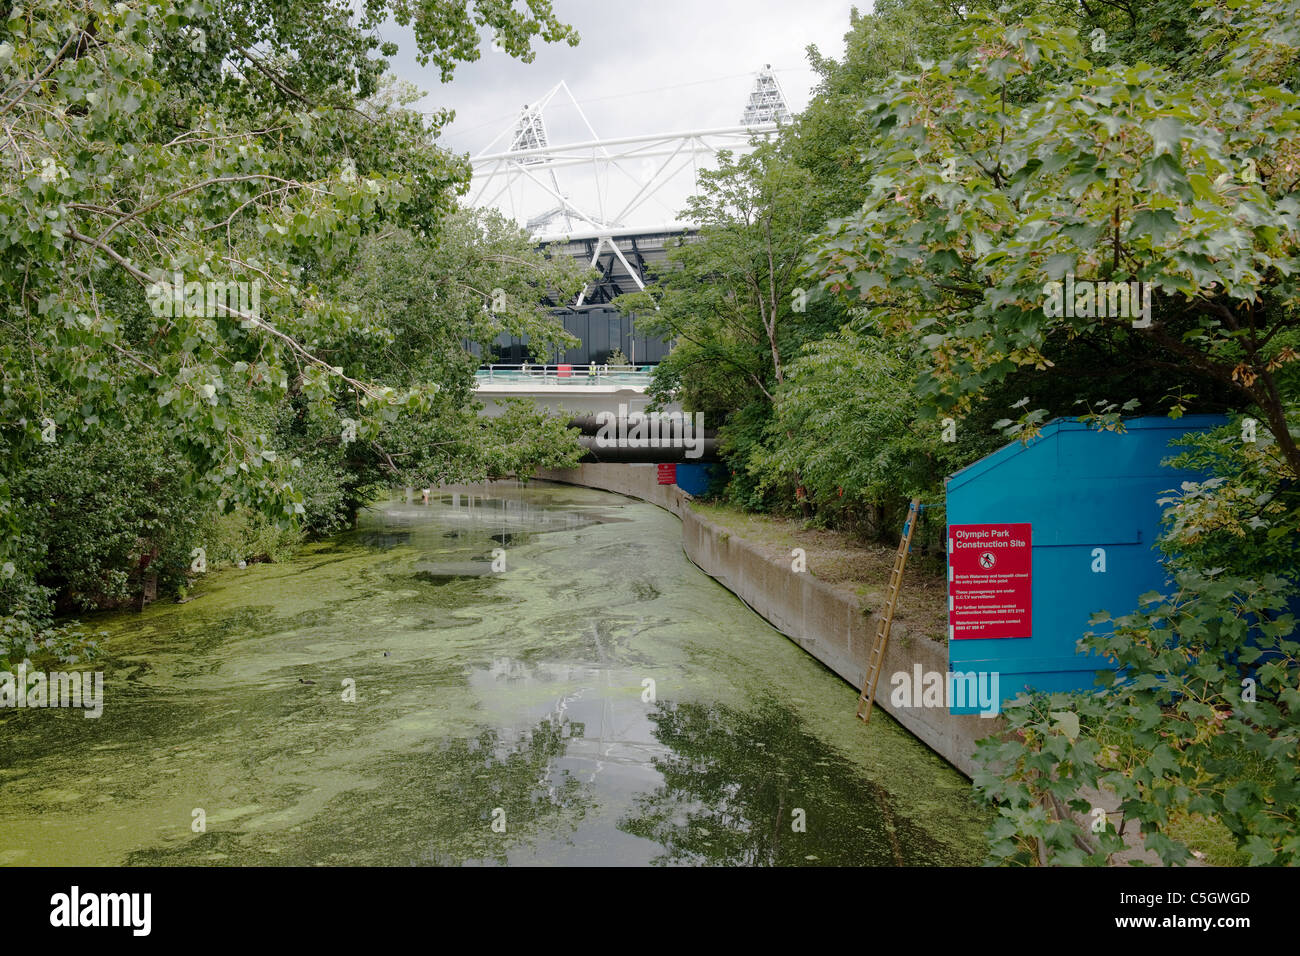 River Lea Closed at The Olympic Games Construction Site - Stock Image